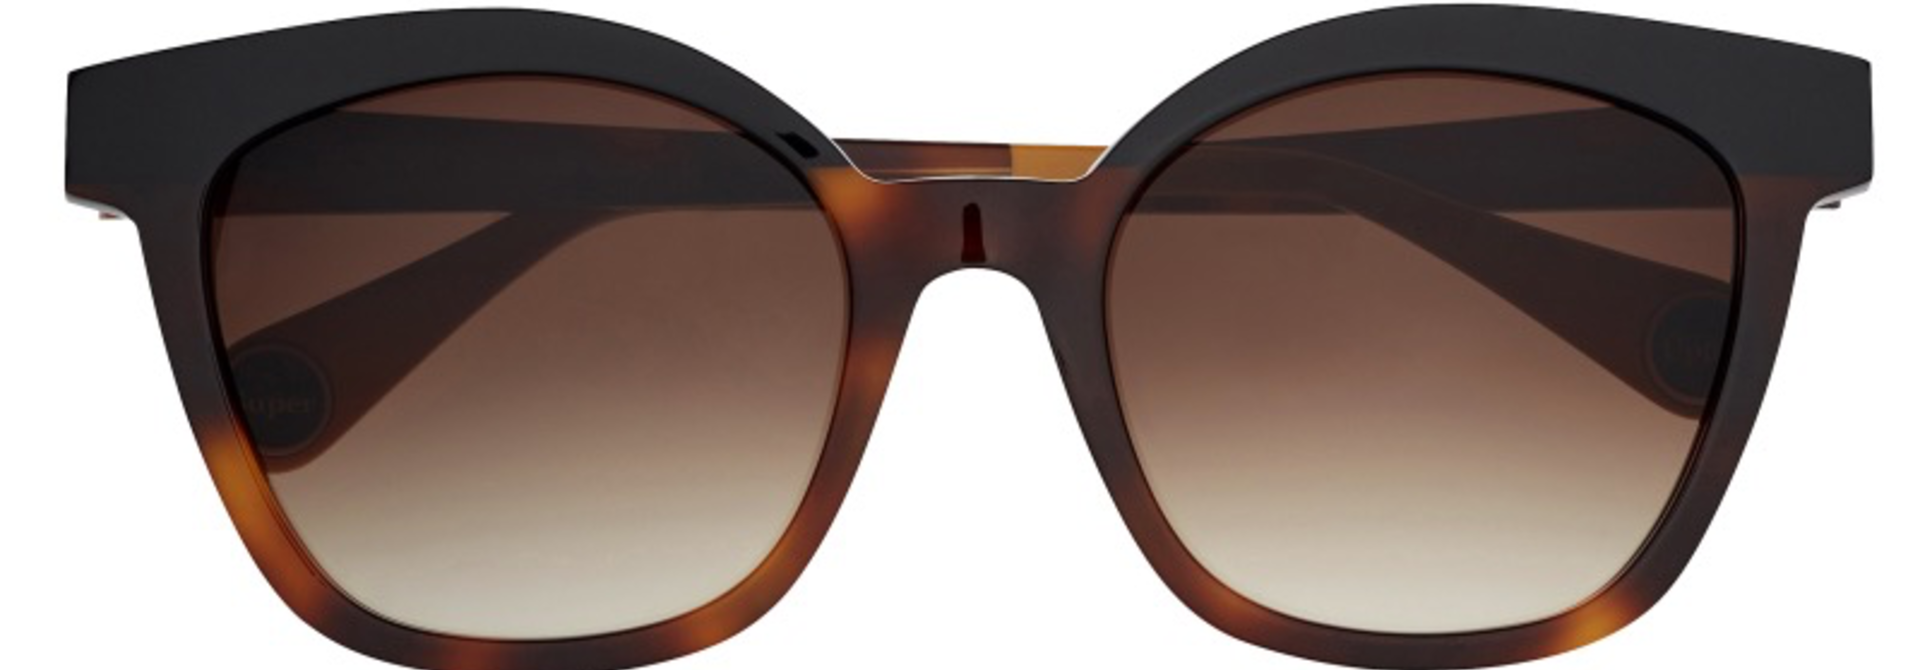 Super Upper 3 by Woow Eyewear